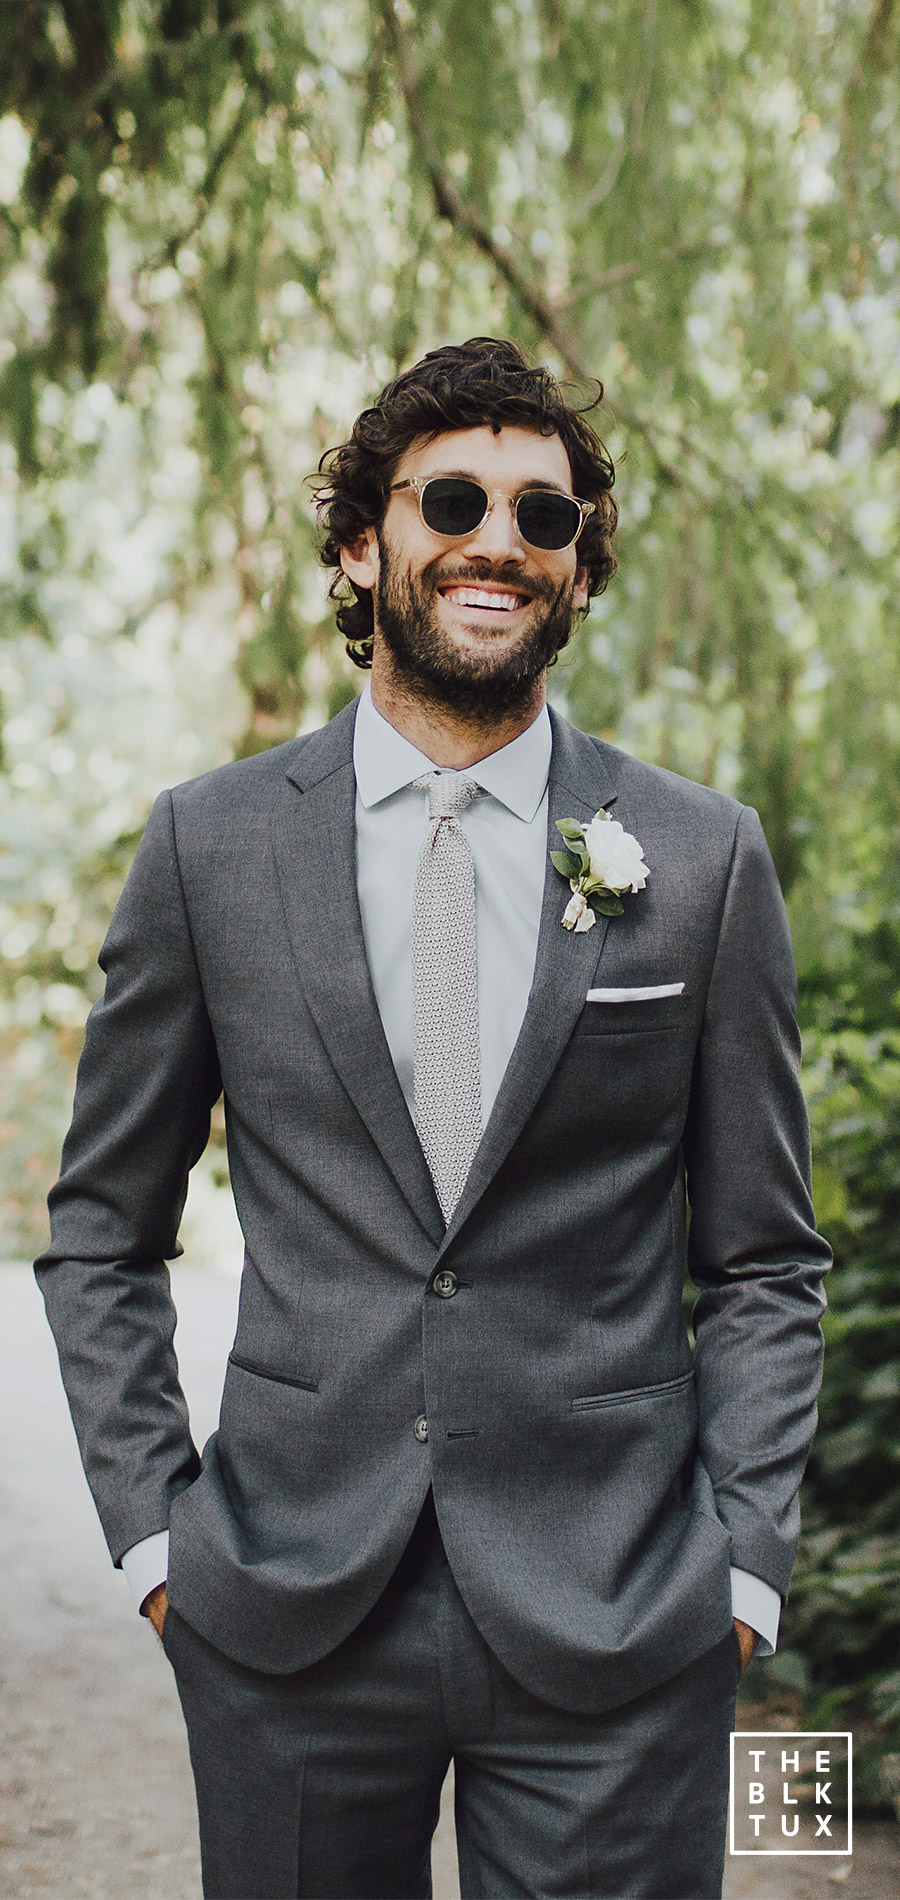 the black tux 2017 online tuxedo rental service grey gray charcoal suit casual wedding dress style inspiration